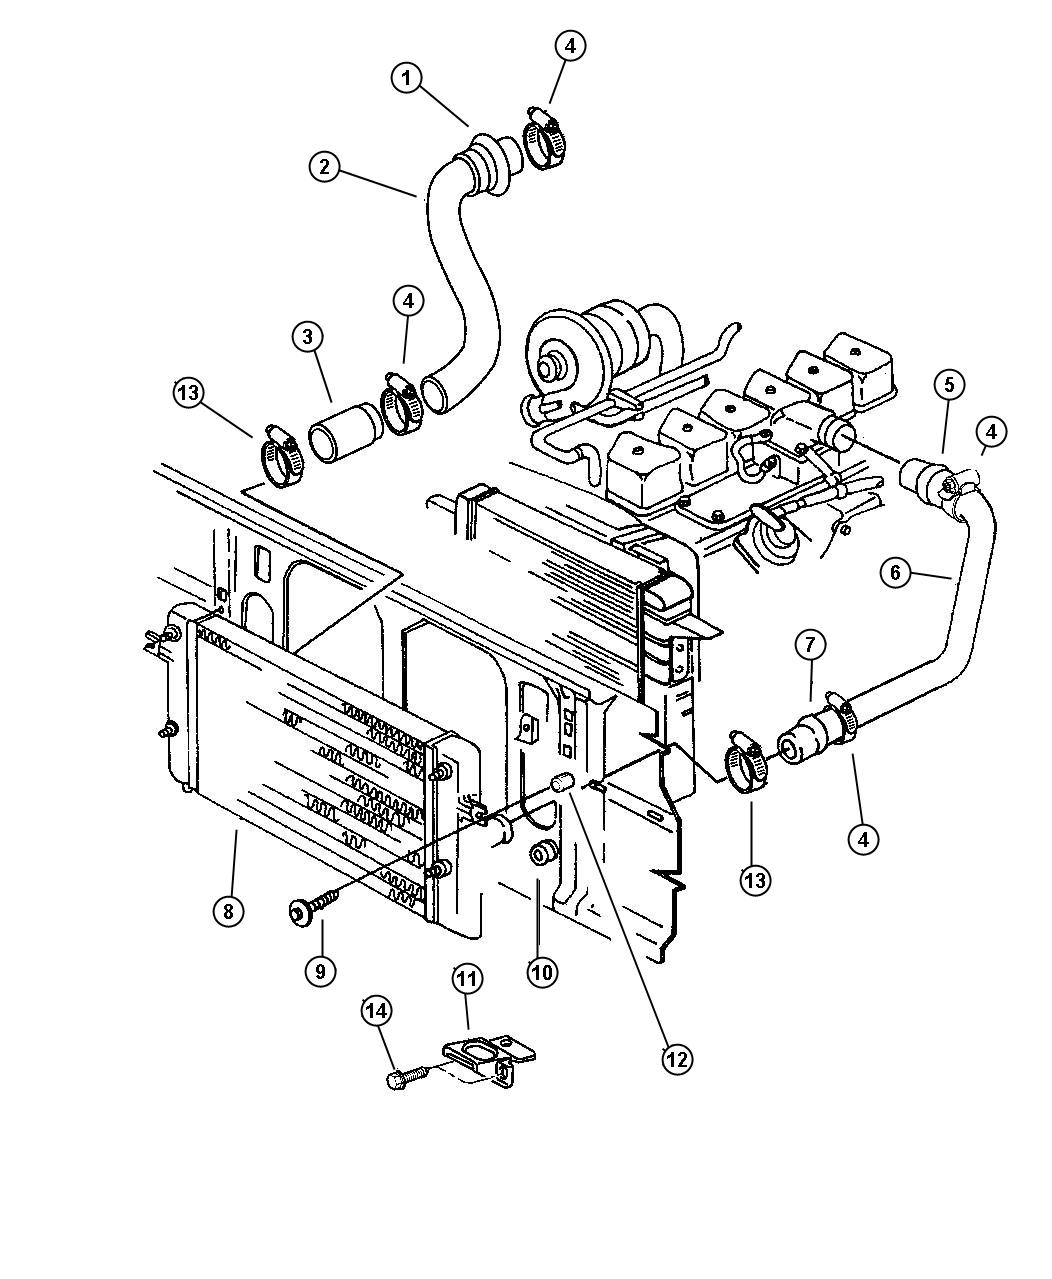 Charge Air Cooler System